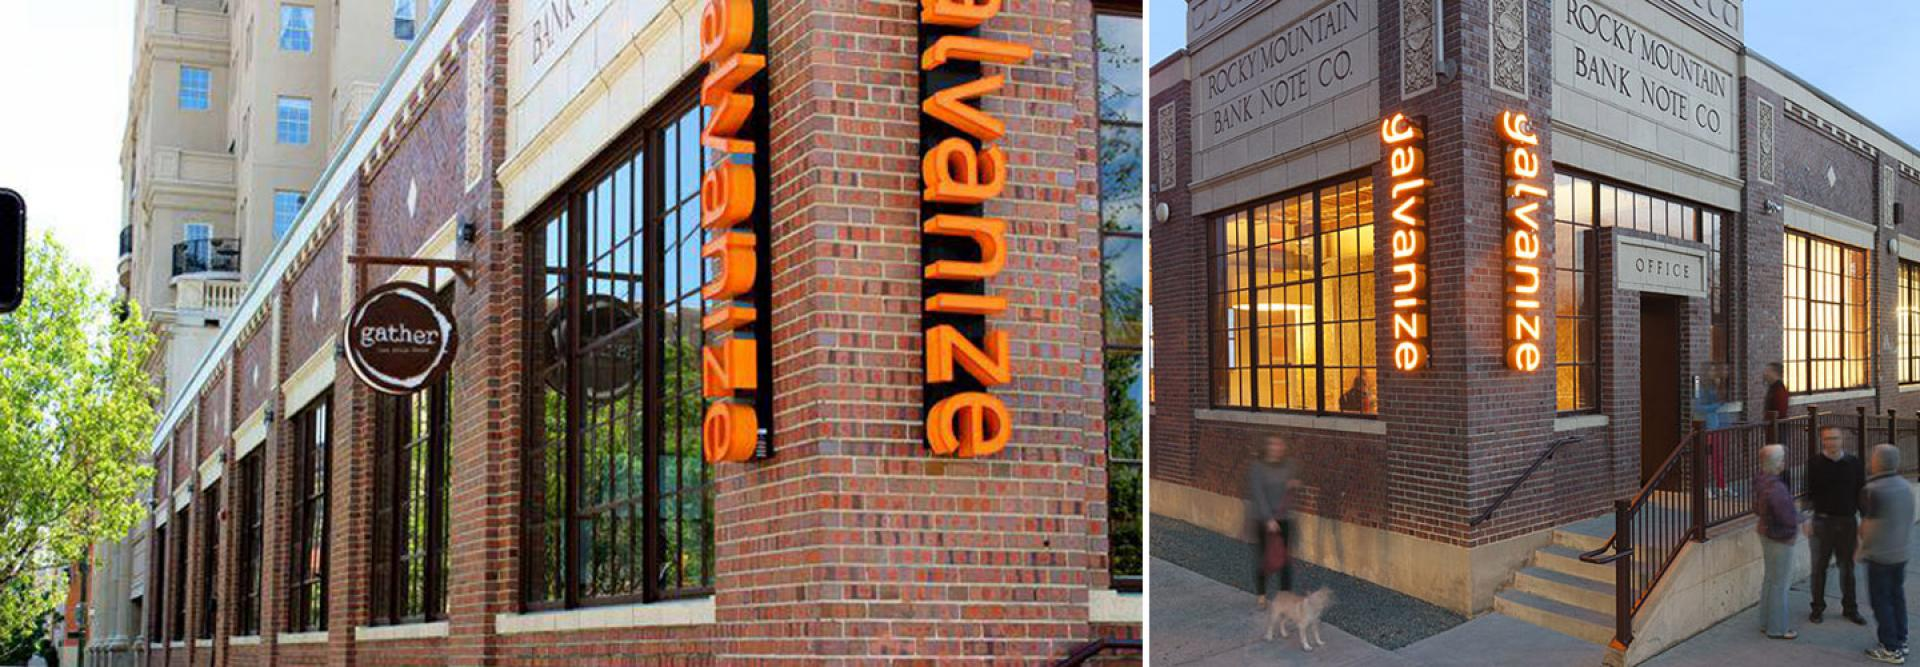 Rocky Mountain Bank Note Co. Building Renovated To Become Galvanize 1.0